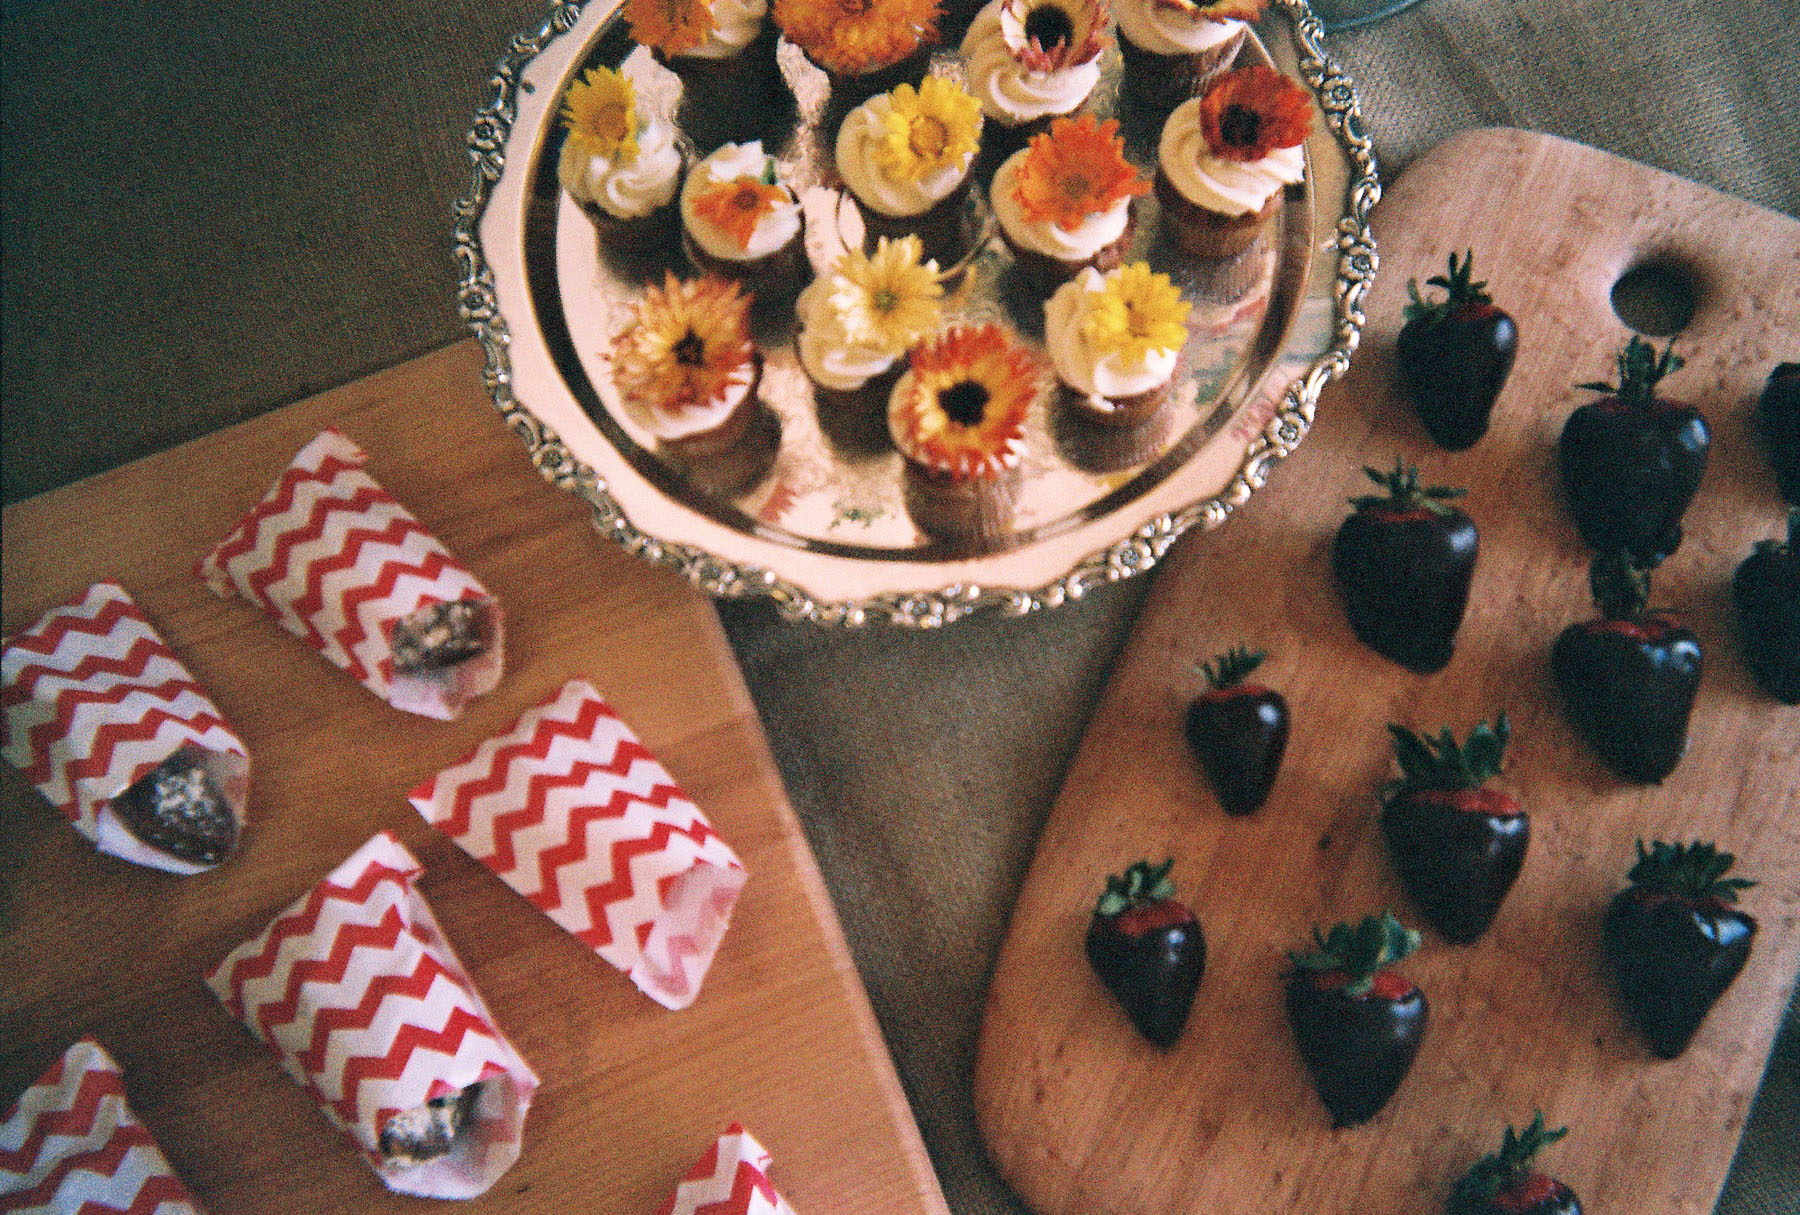 The Analog Project // Valleybrink Road catering